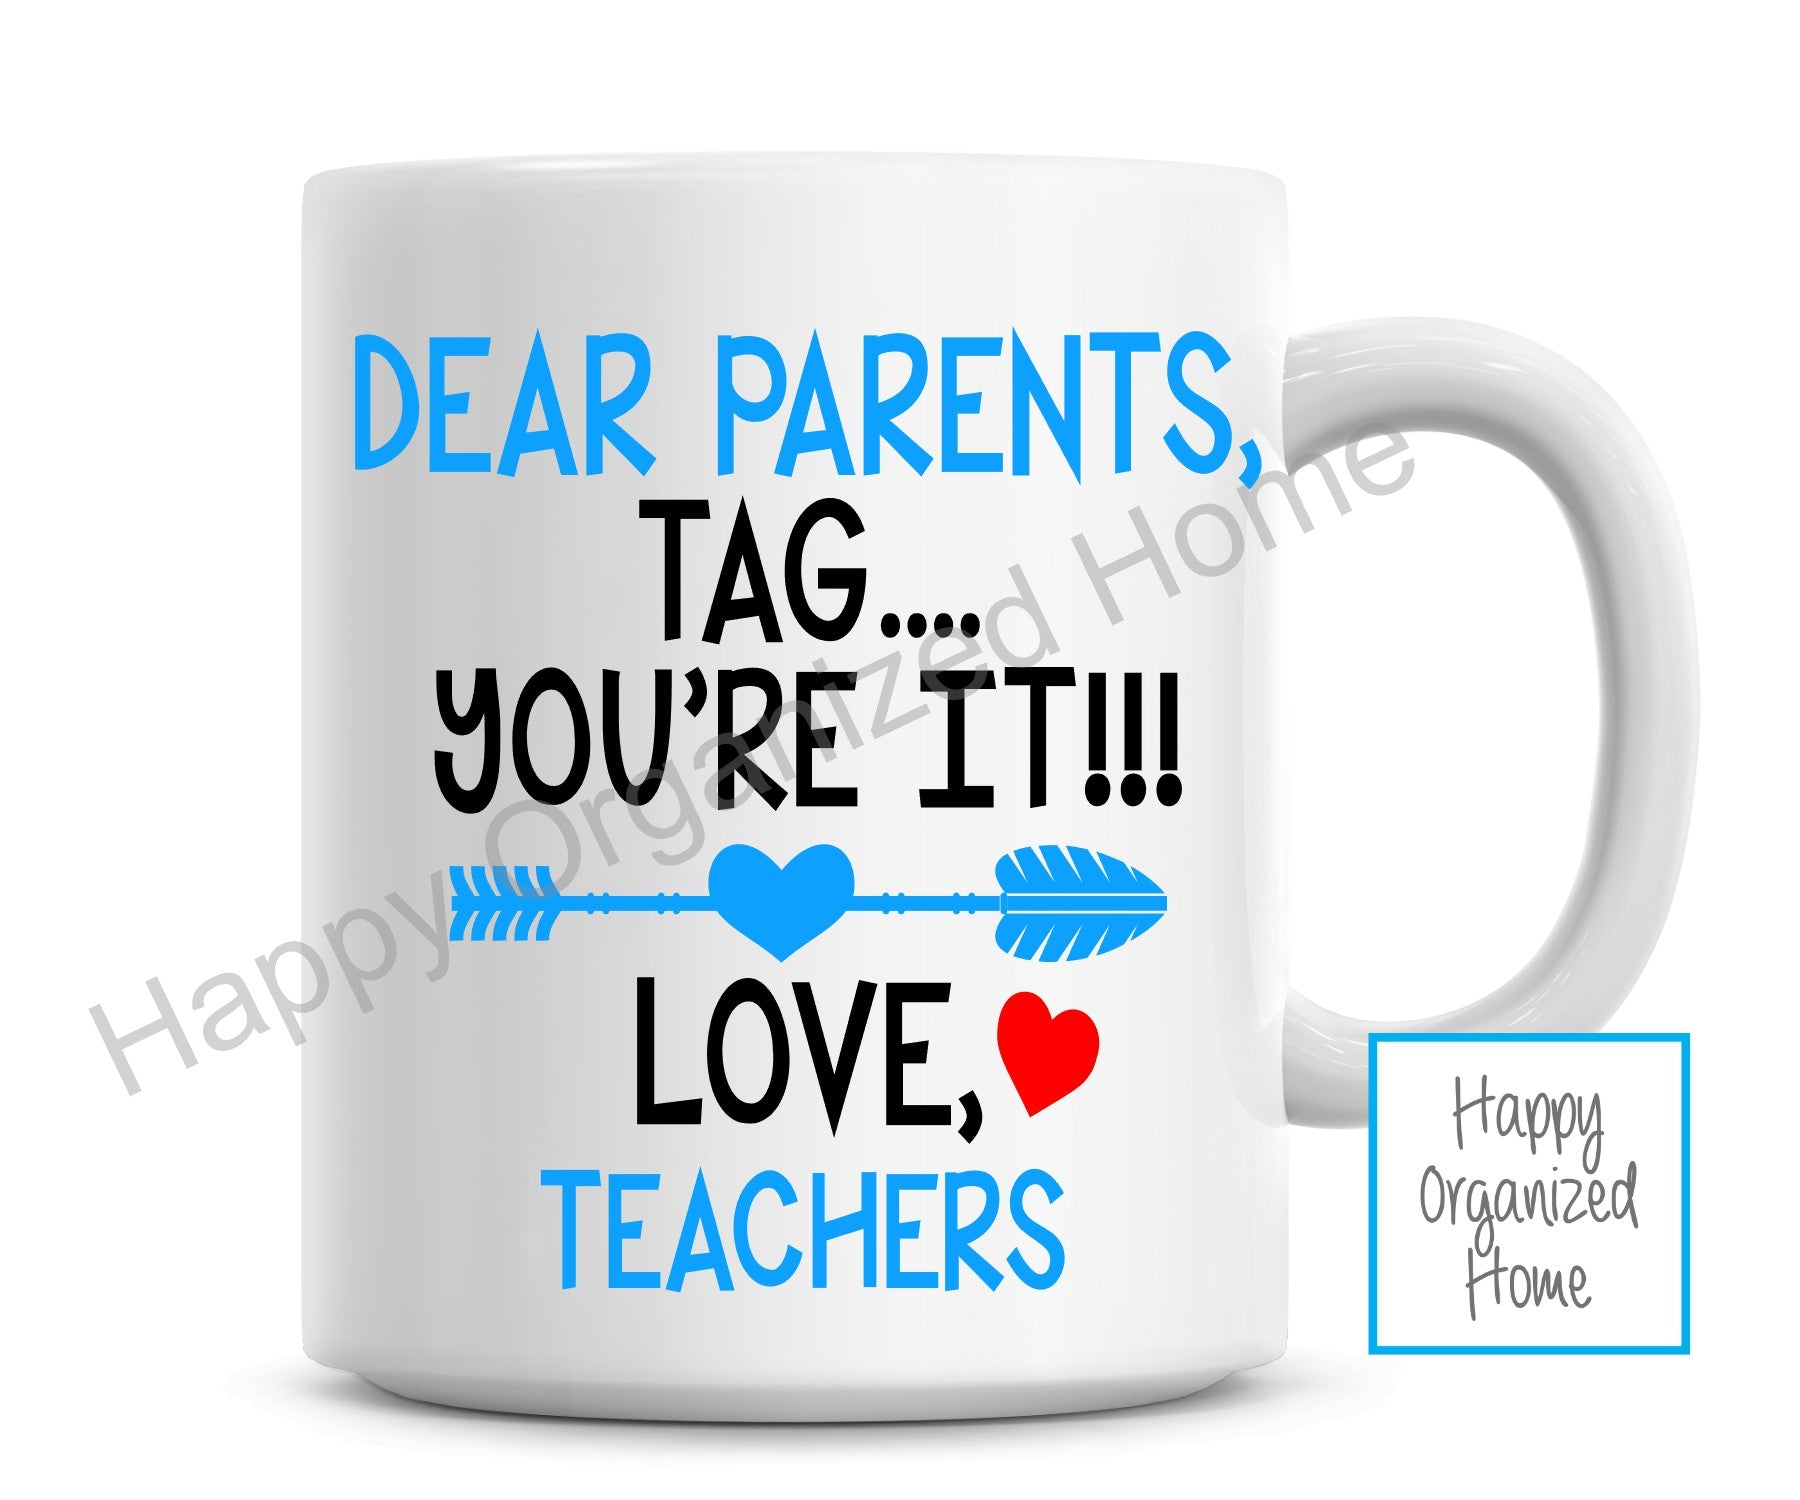 Dear Parents, Tag You're it! Love Teachers.  Mug